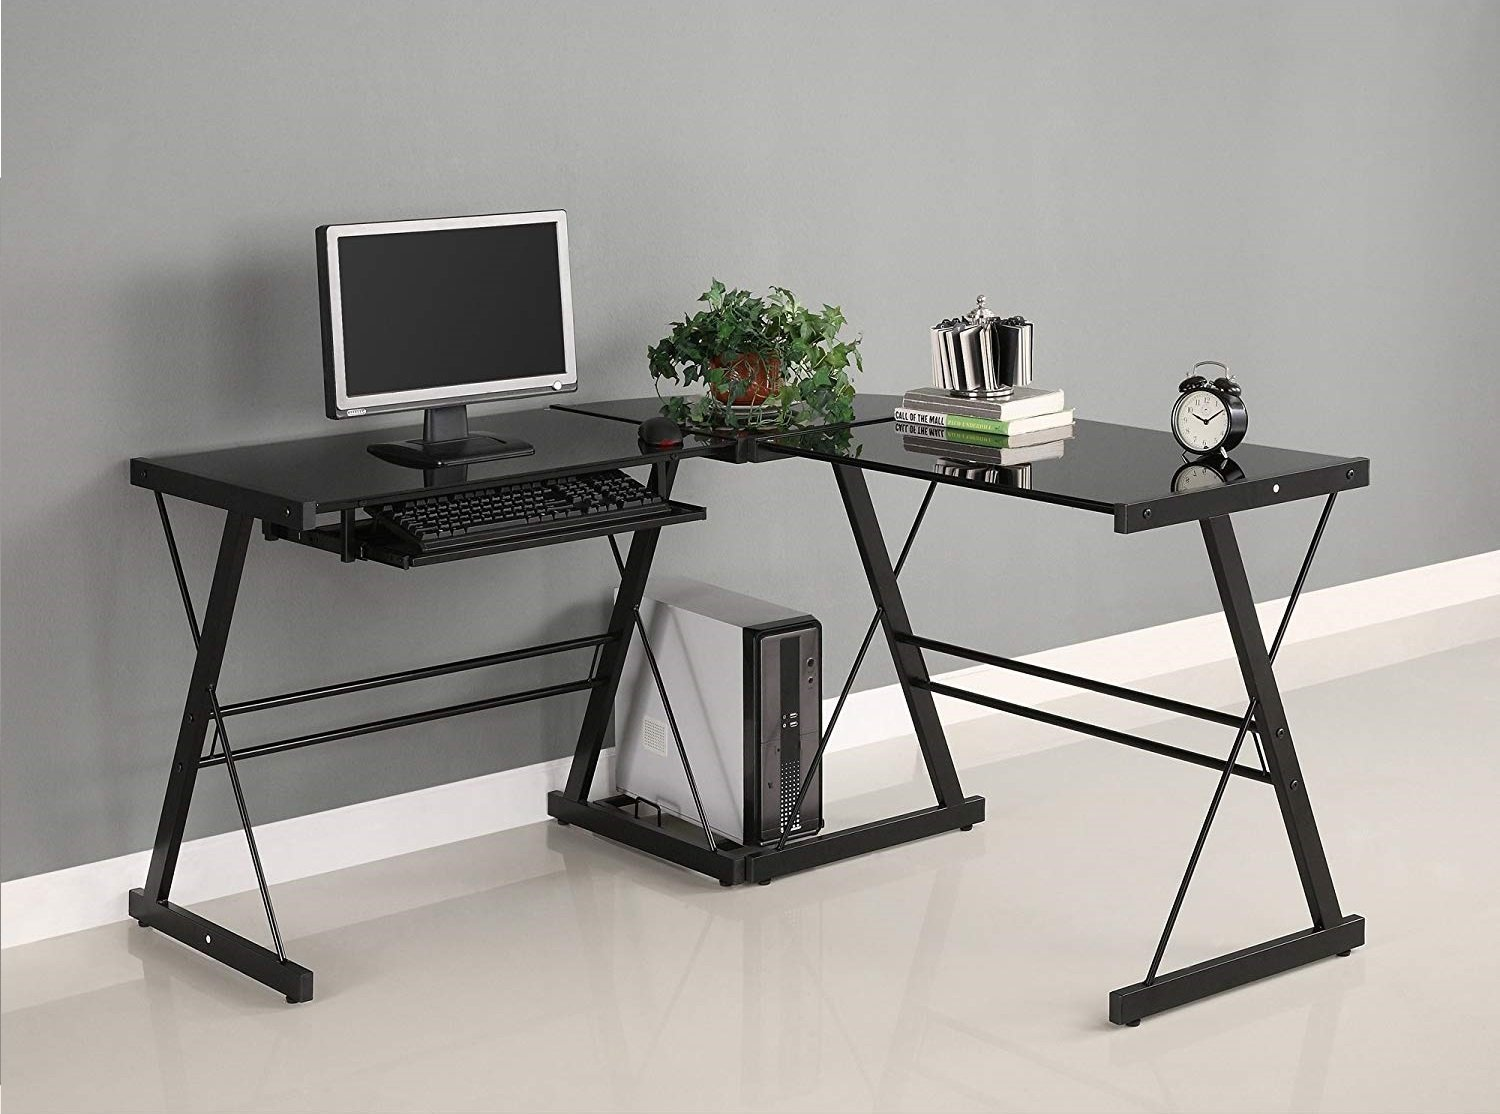 Image of L-shaped walker edison computer table